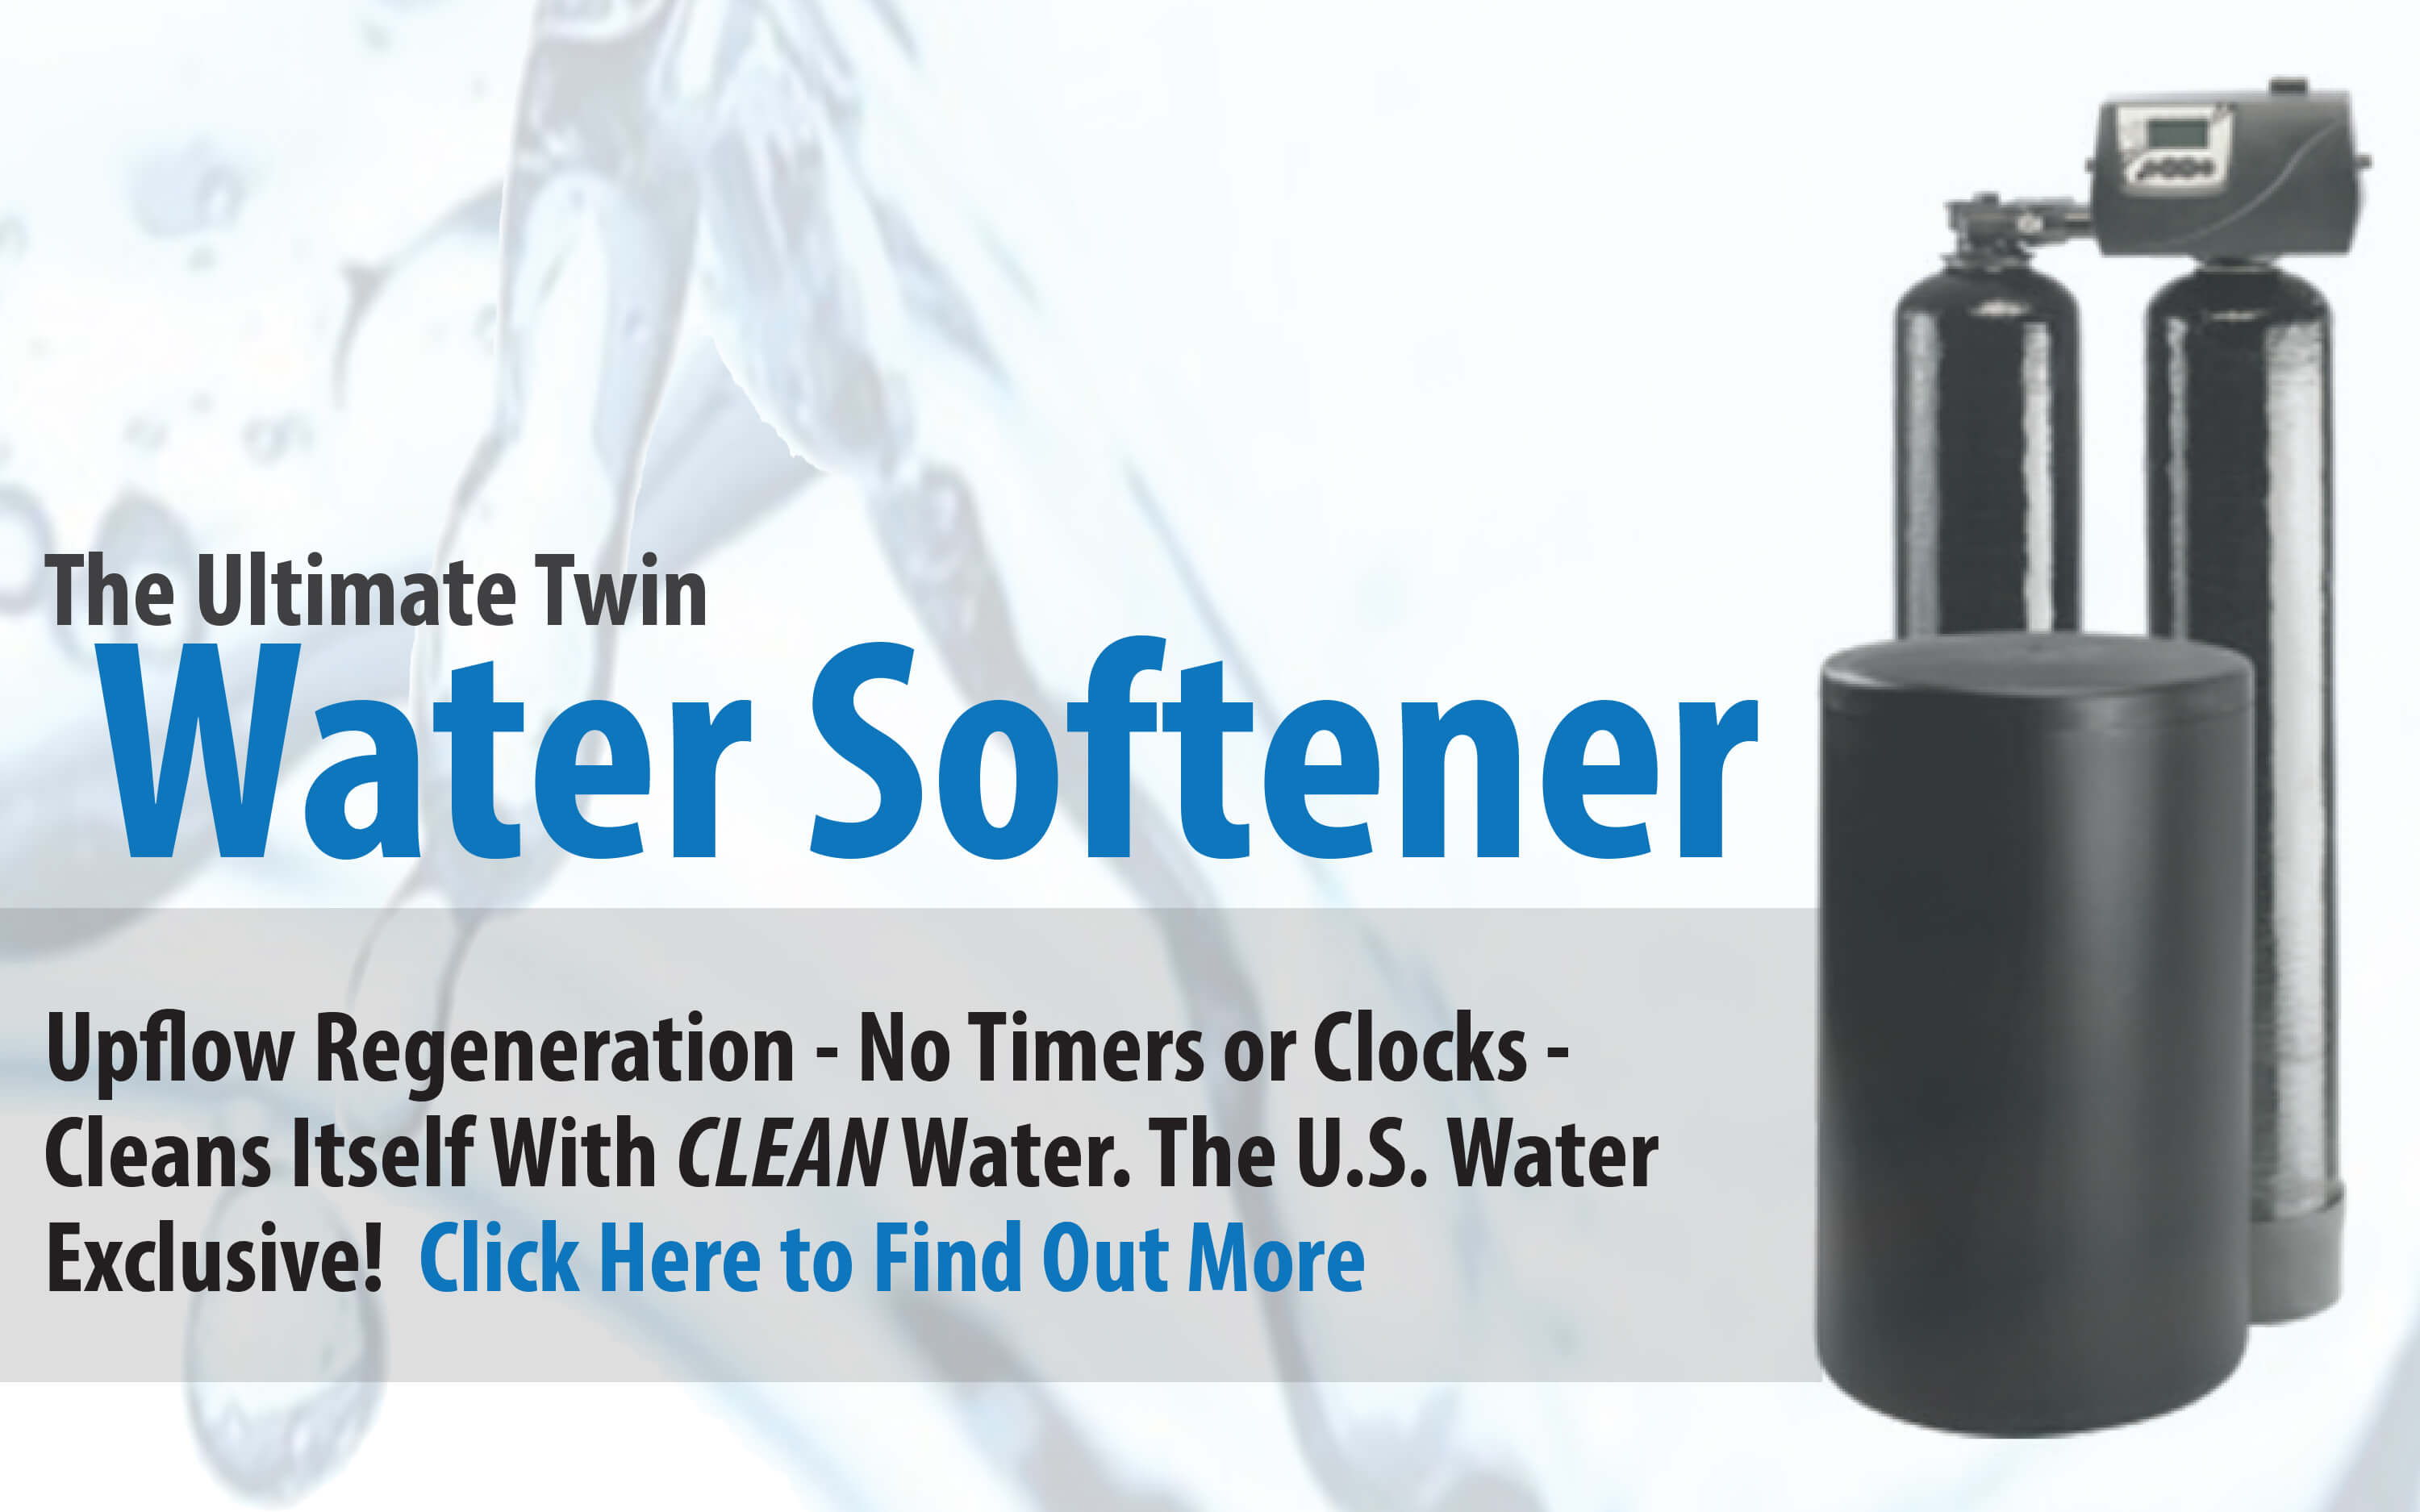 The Ultimate Twin Water Softener System